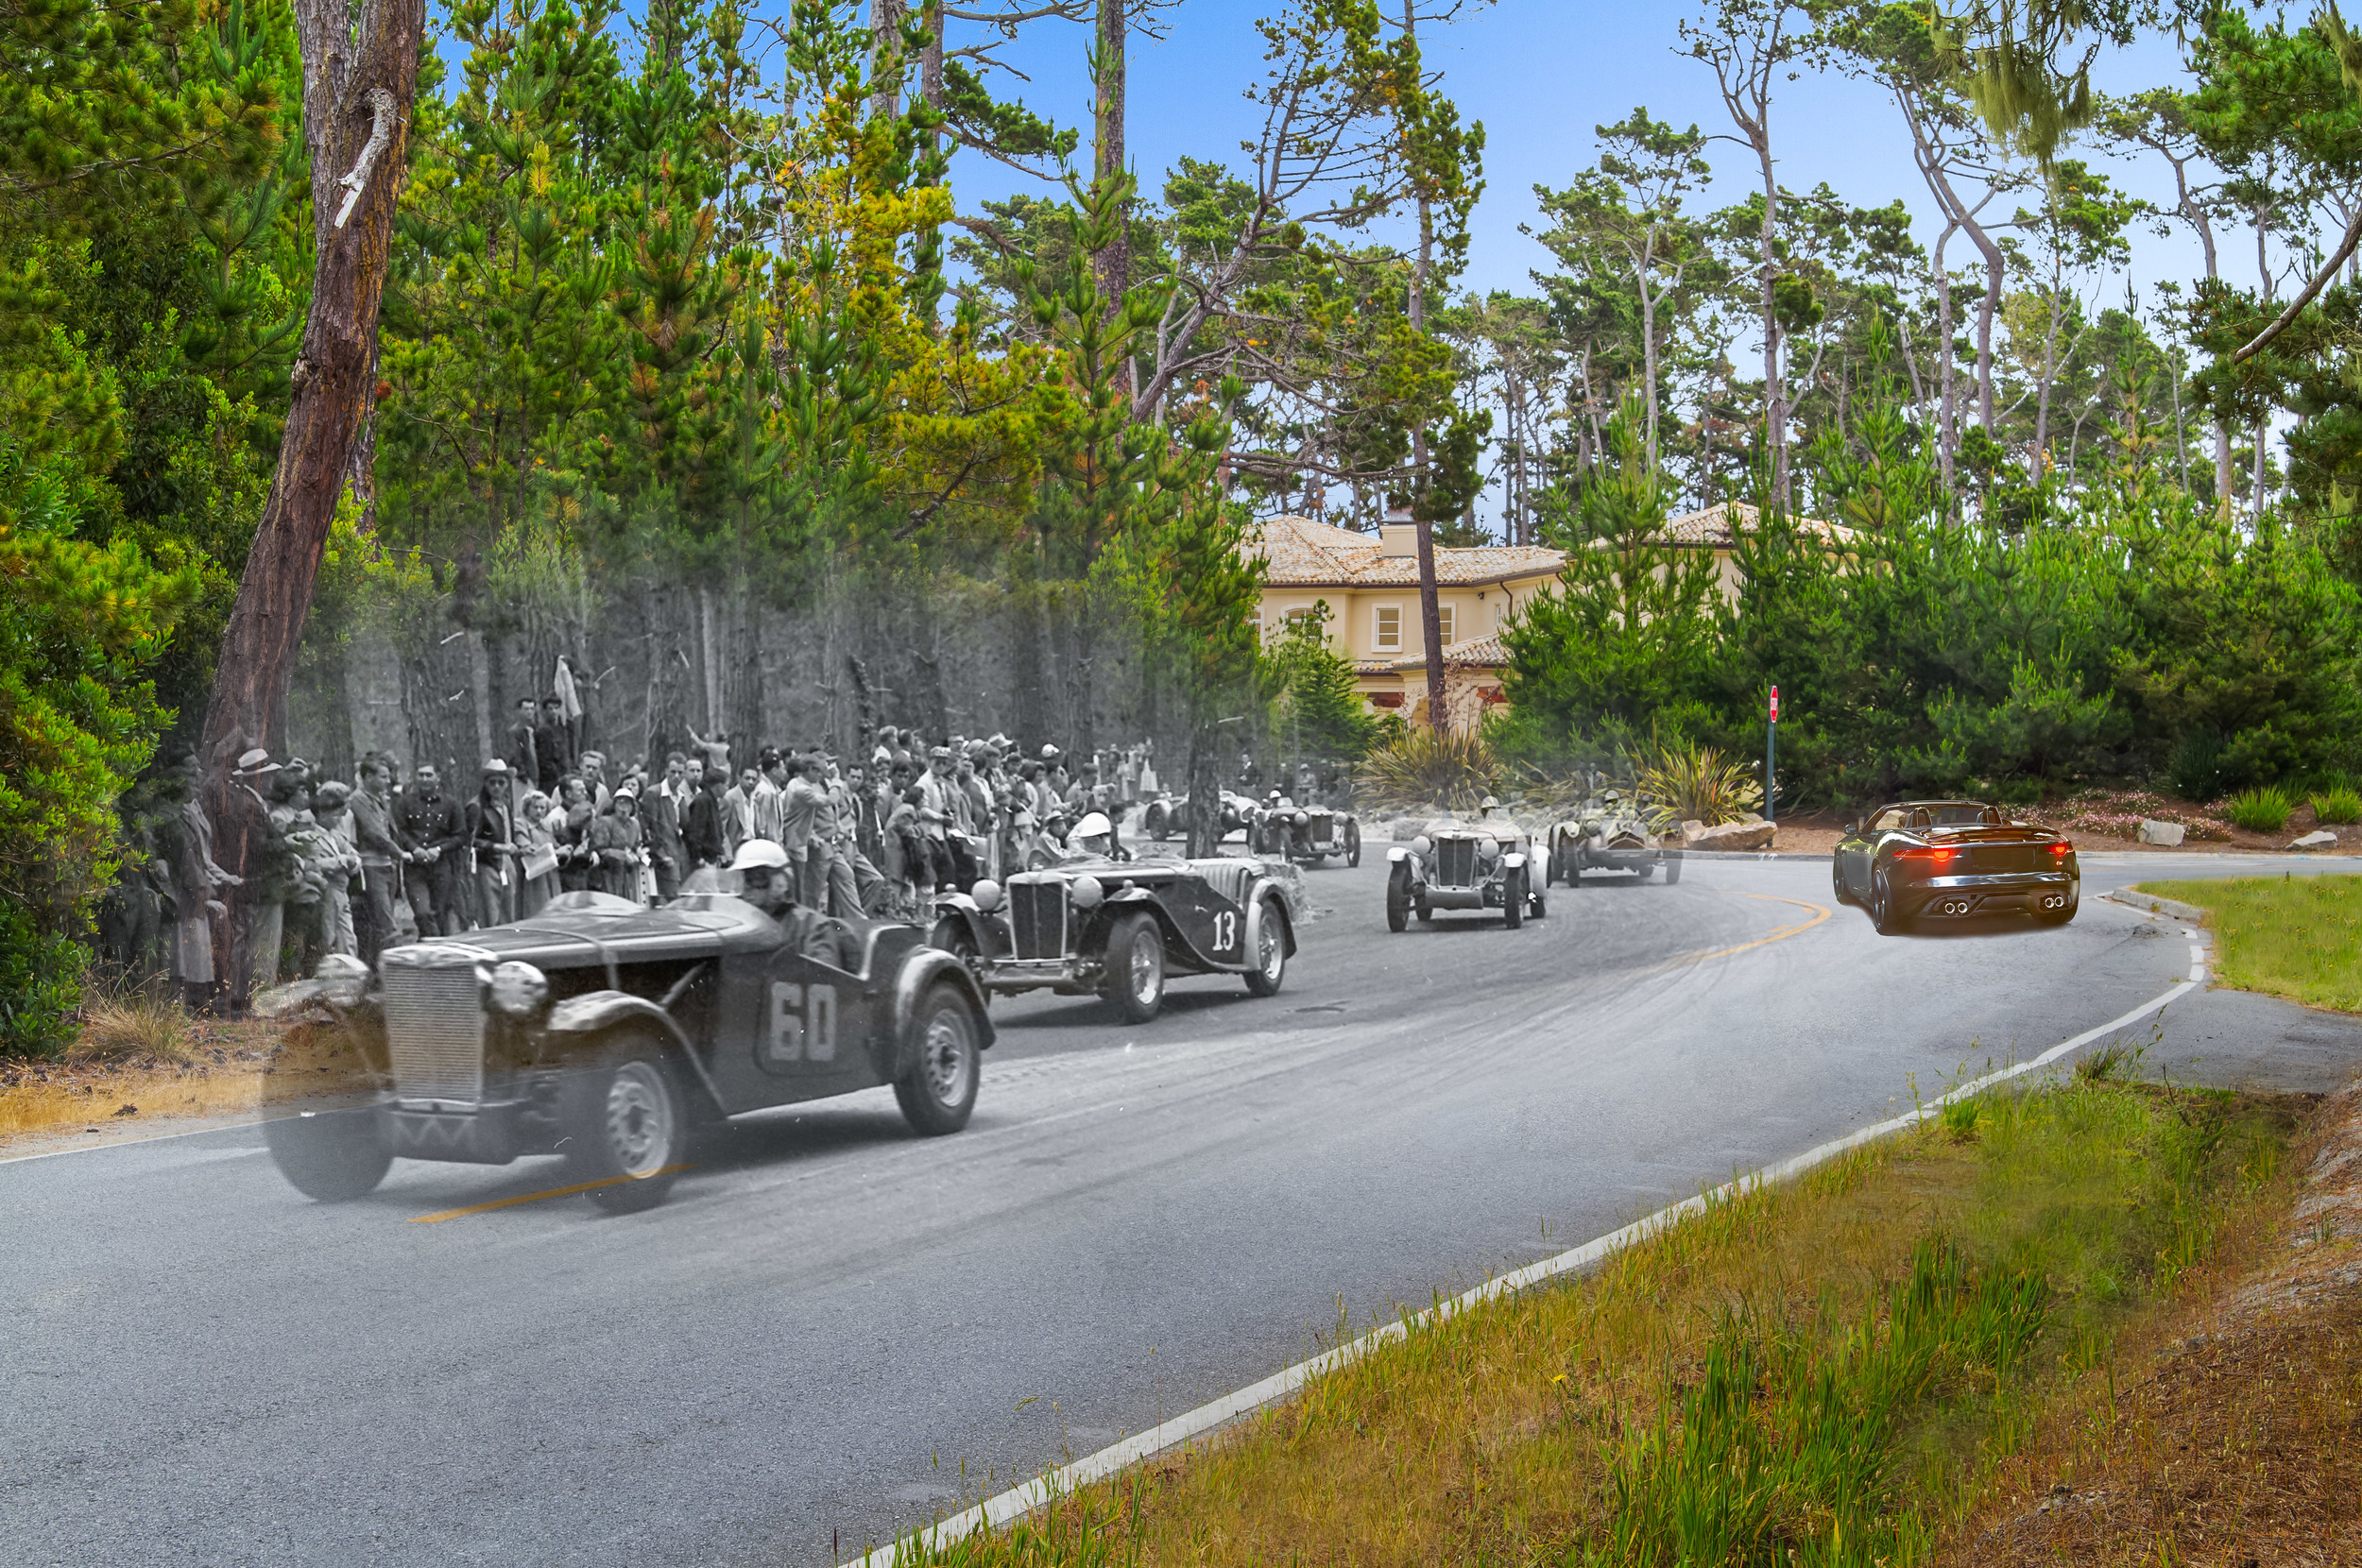 Pebble Beach and the historic road races that took place there.